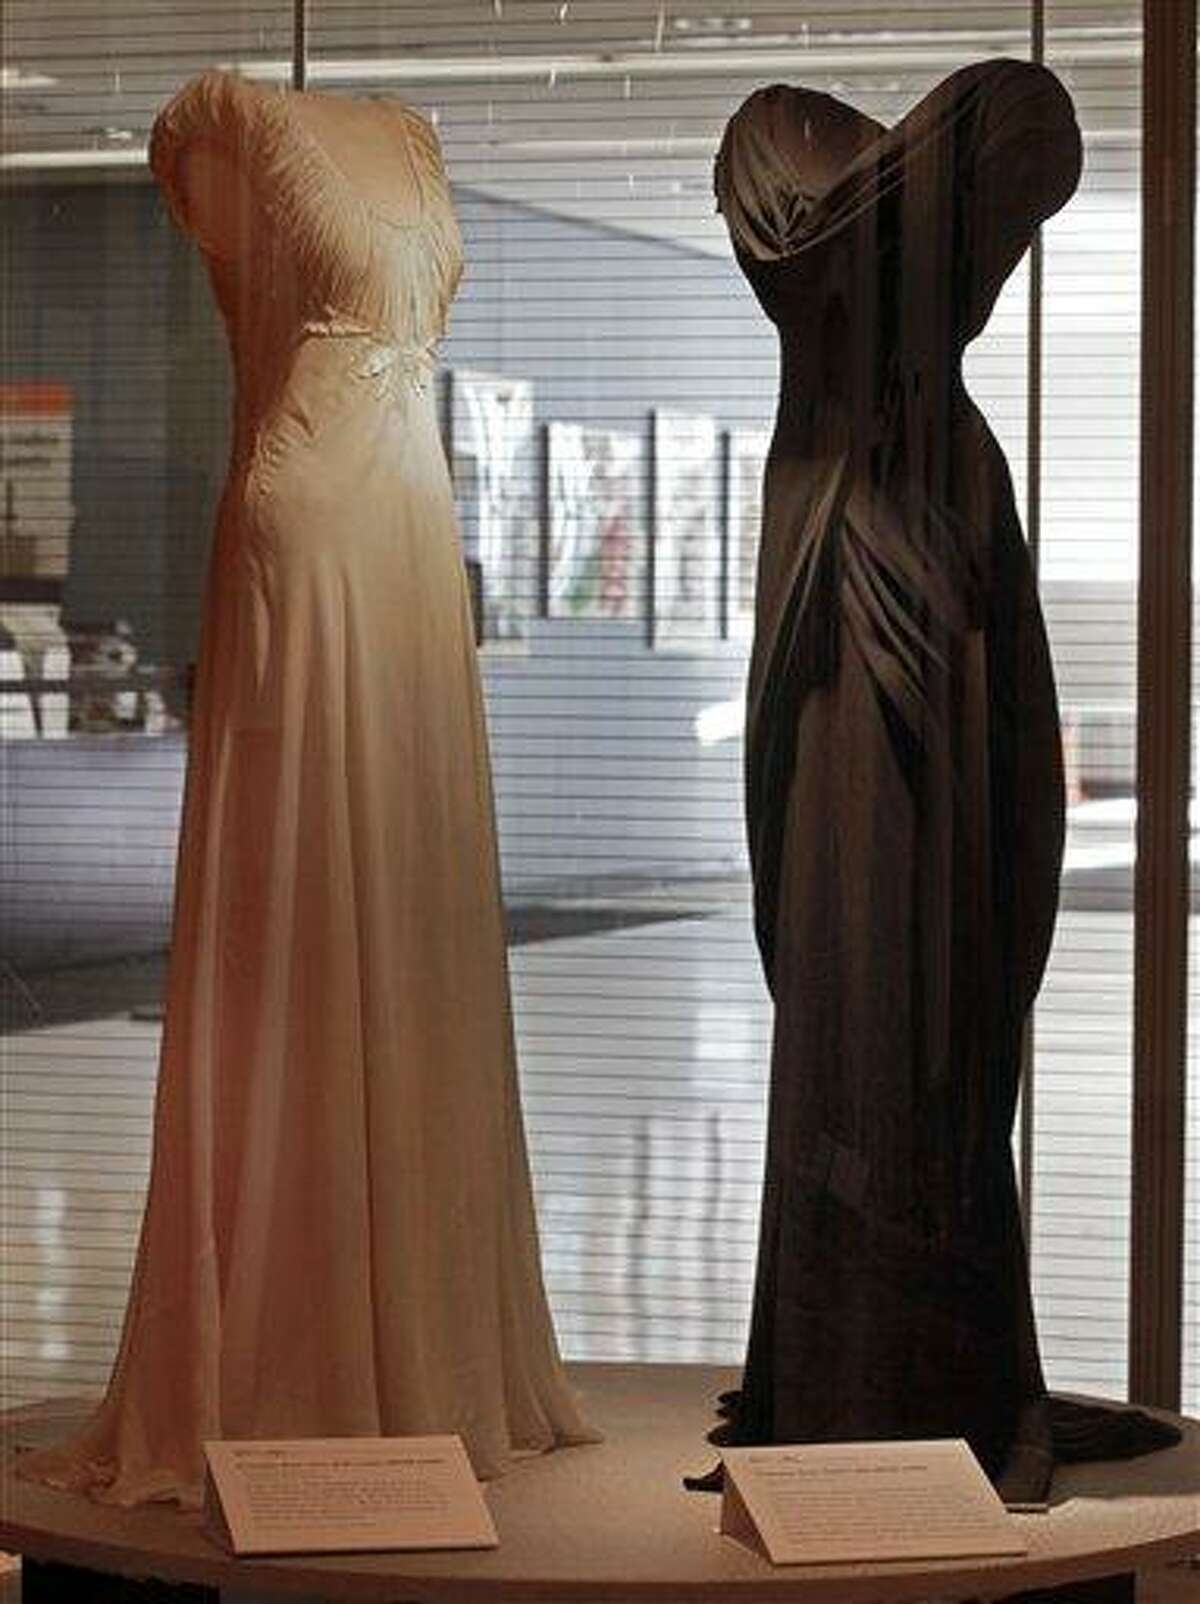 """A design by Irene, left, from the 1948 MGM movie """"State of the Union,"""" and one by Walter Plunkett from the 1949 MGM movie """"Adam's Rib,"""" are shown as part of the """"Katharine Hepburn: Dressed for Stage and Screen"""" exhibit in the New York Public Library for the Performing Arts at Lincoln Center. AP Photo"""